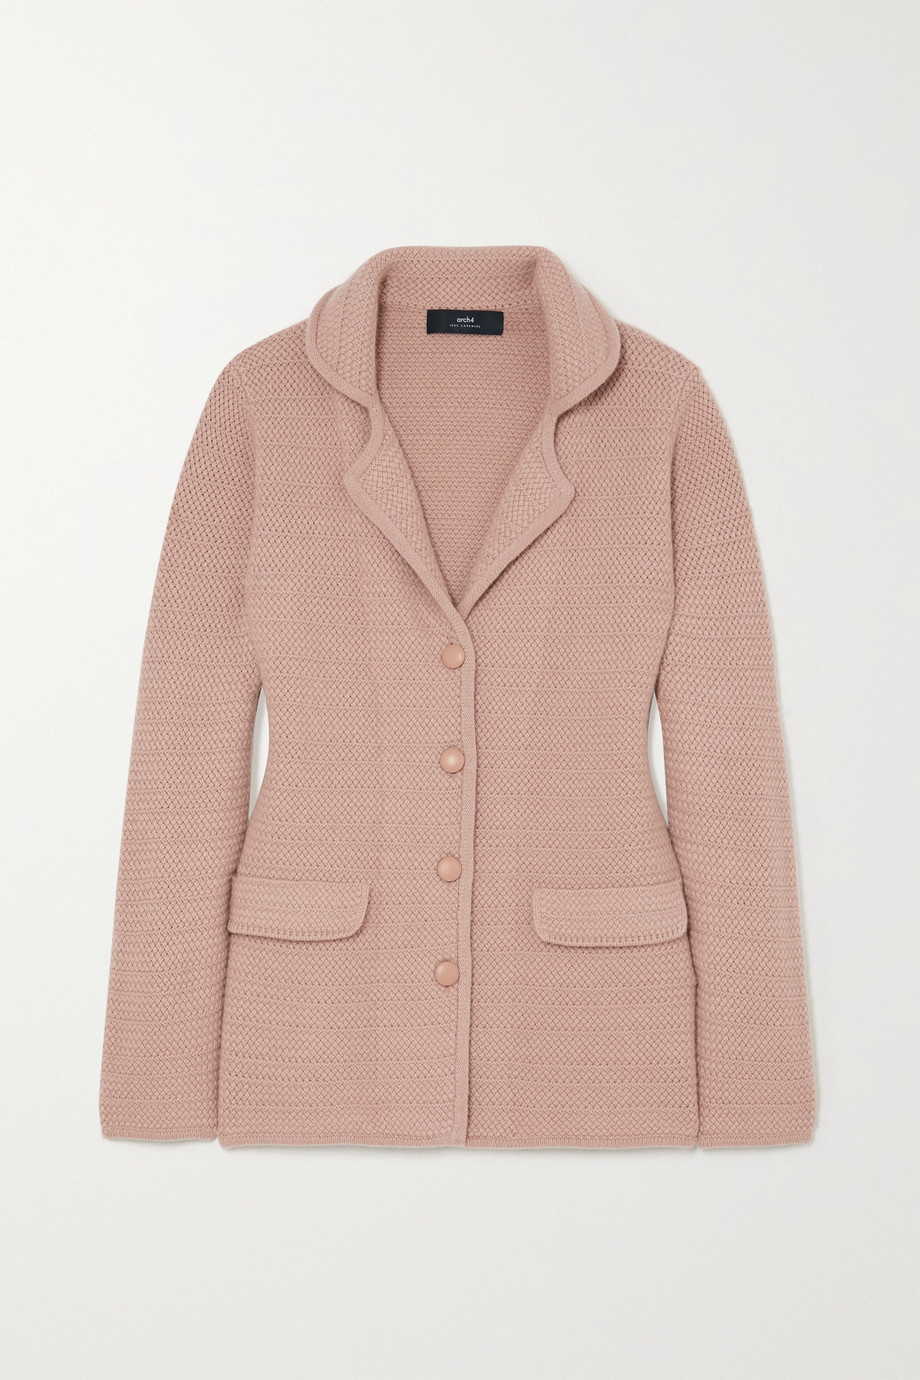 Arch4 Carnaby cashmere jacket